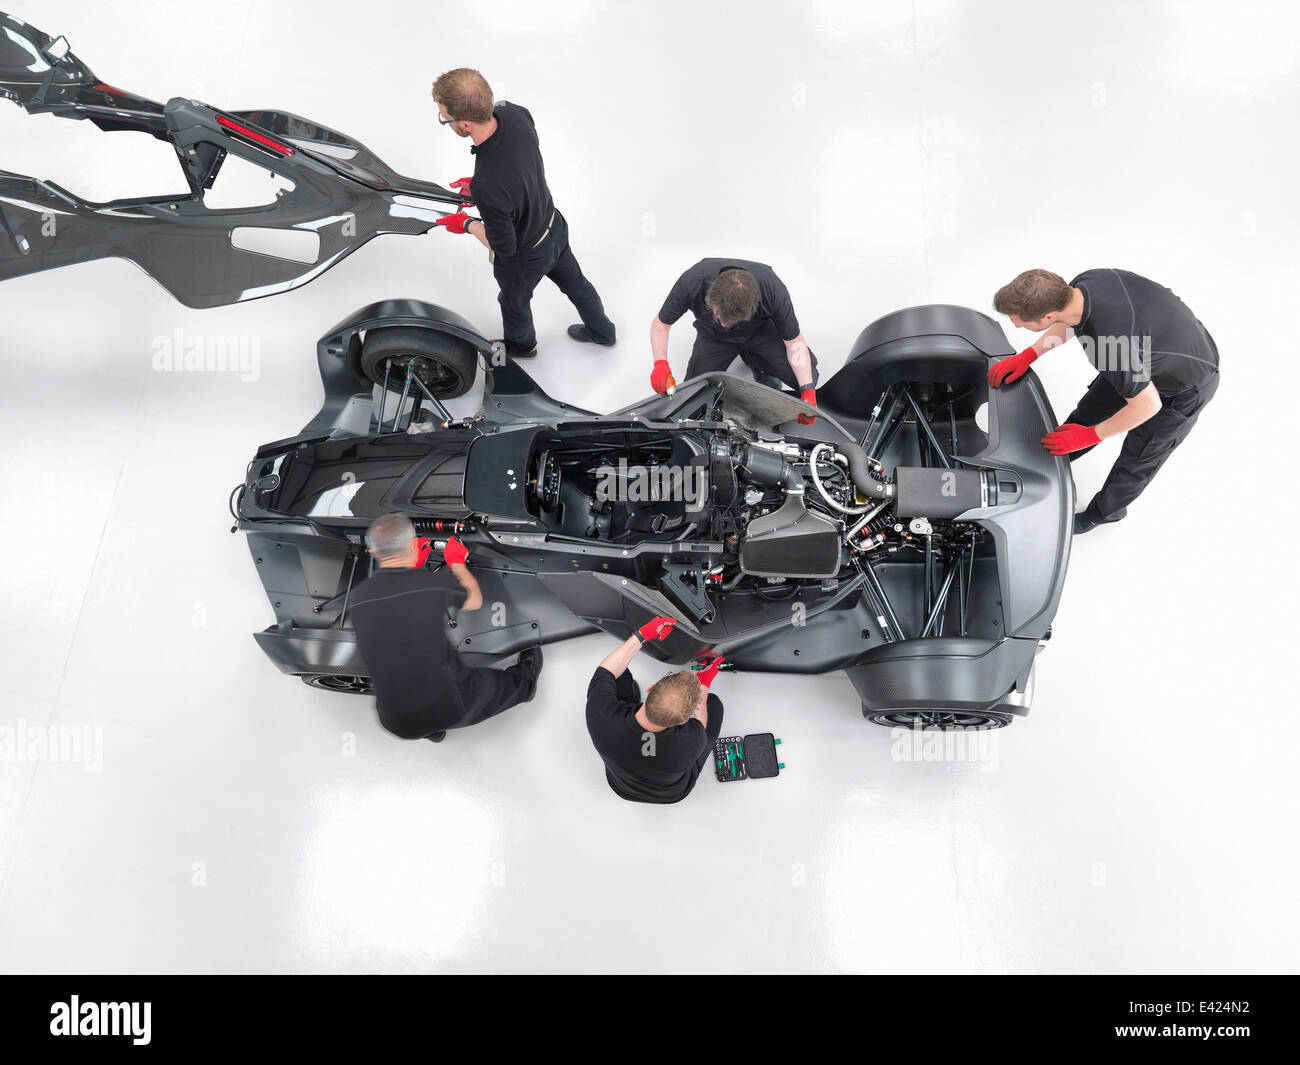 Engineers assemble supercar in sports car factory, overhead view - Stock Image